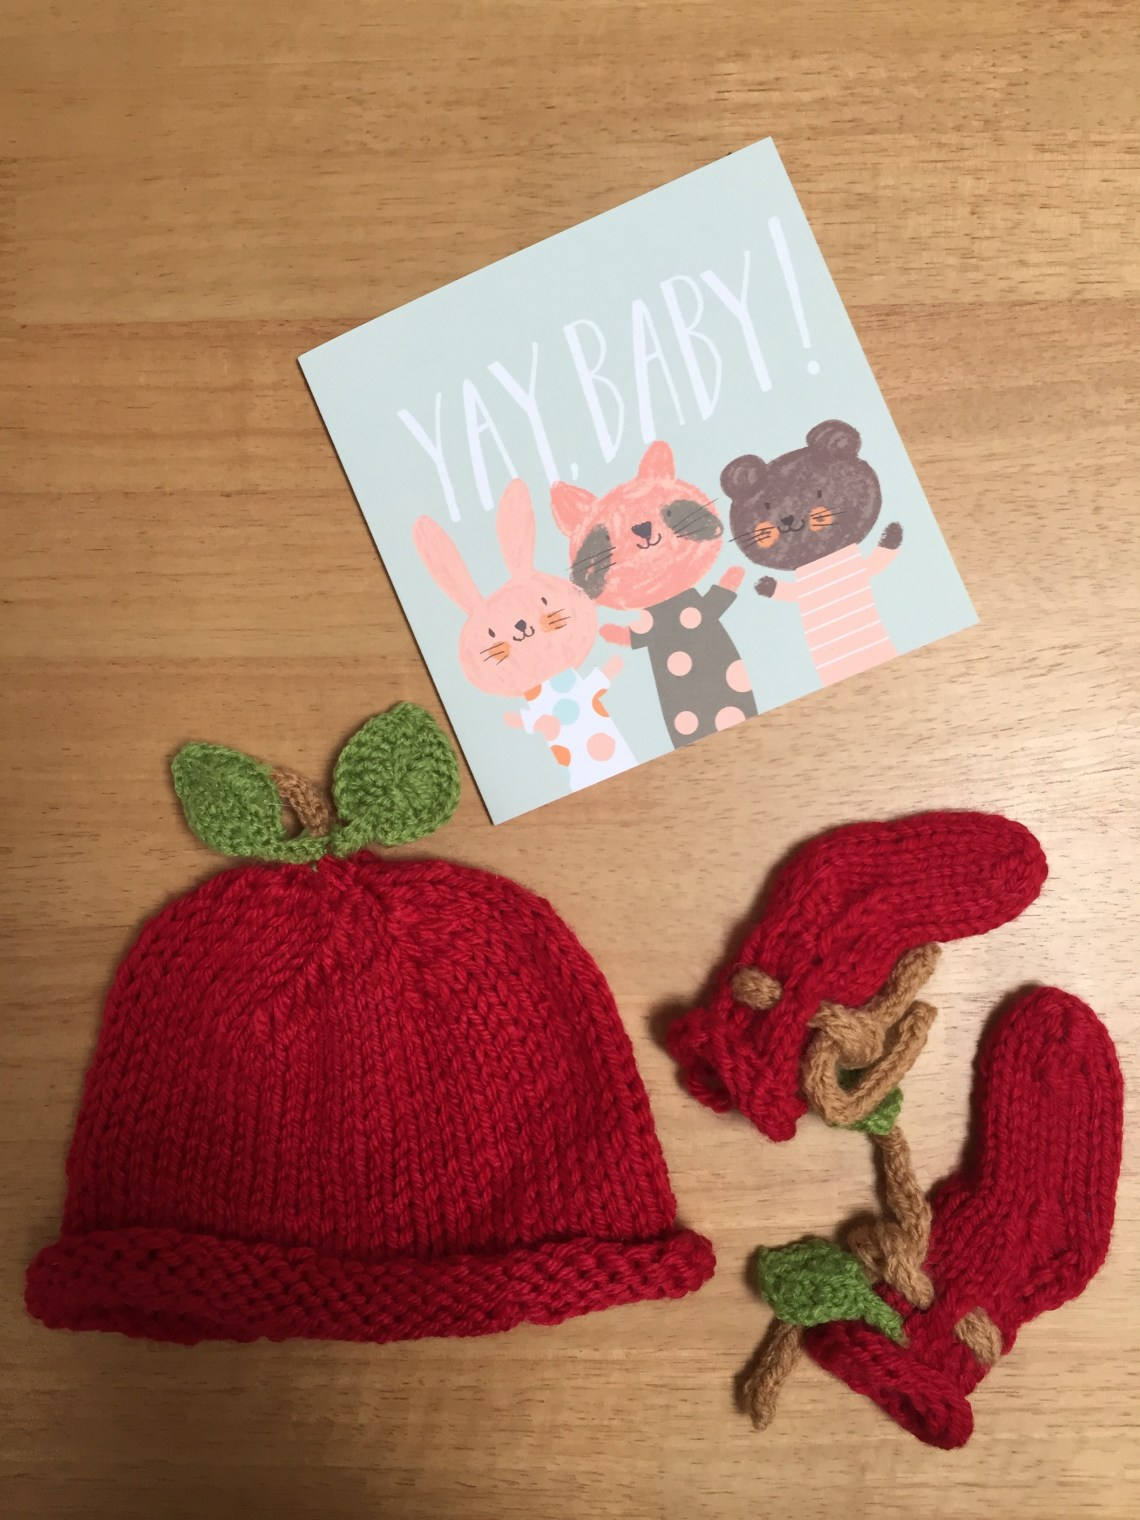 6874817b856 Handknit baby gift set - knitted baby booties and hat